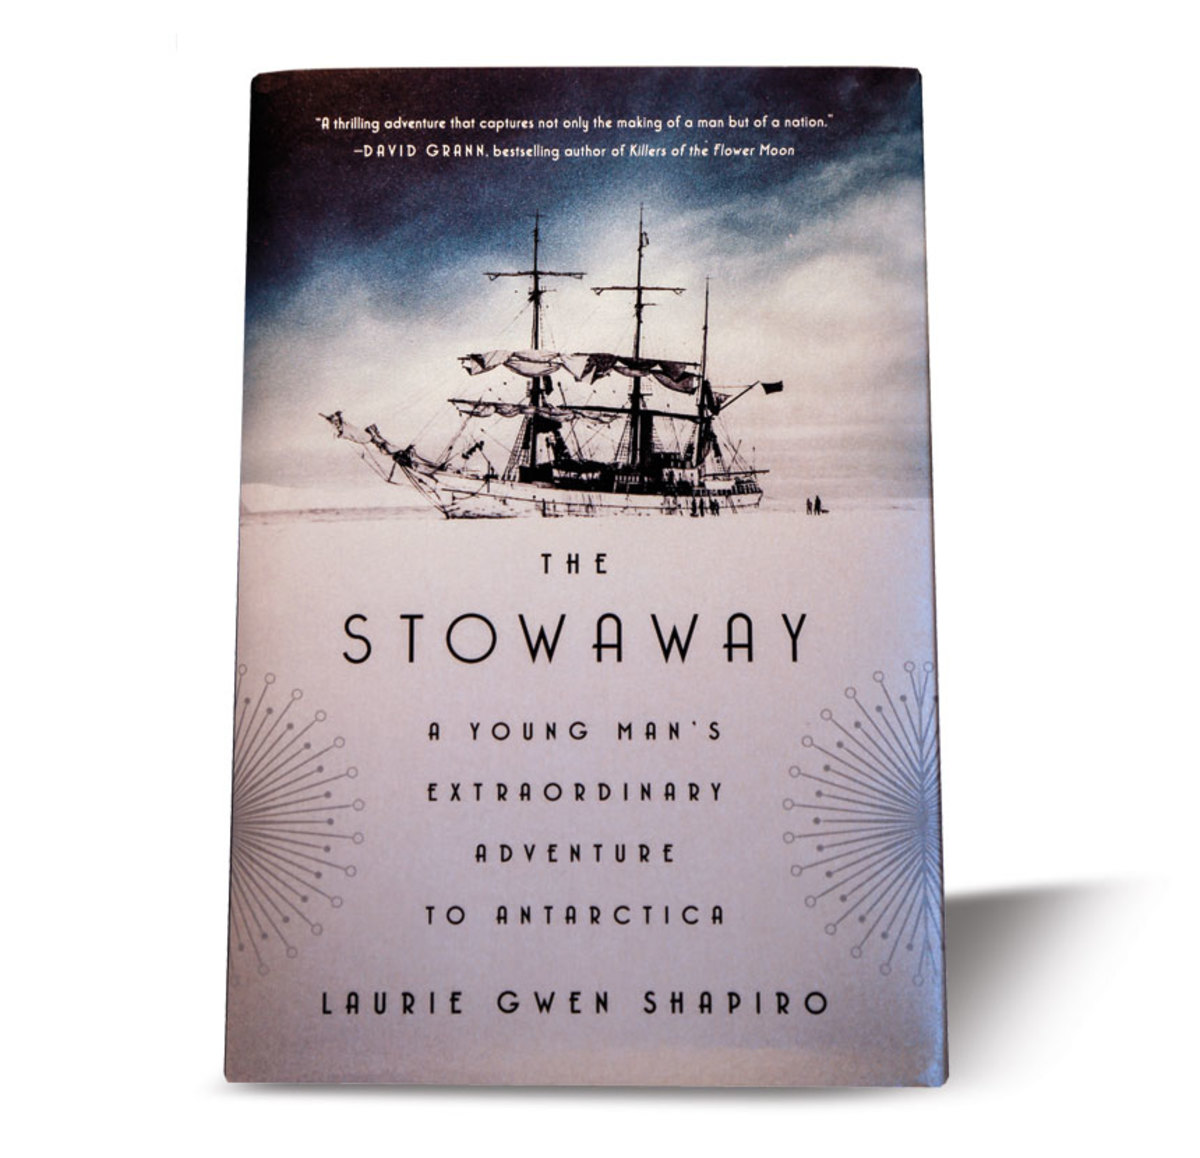 TheStowaway-book-cover